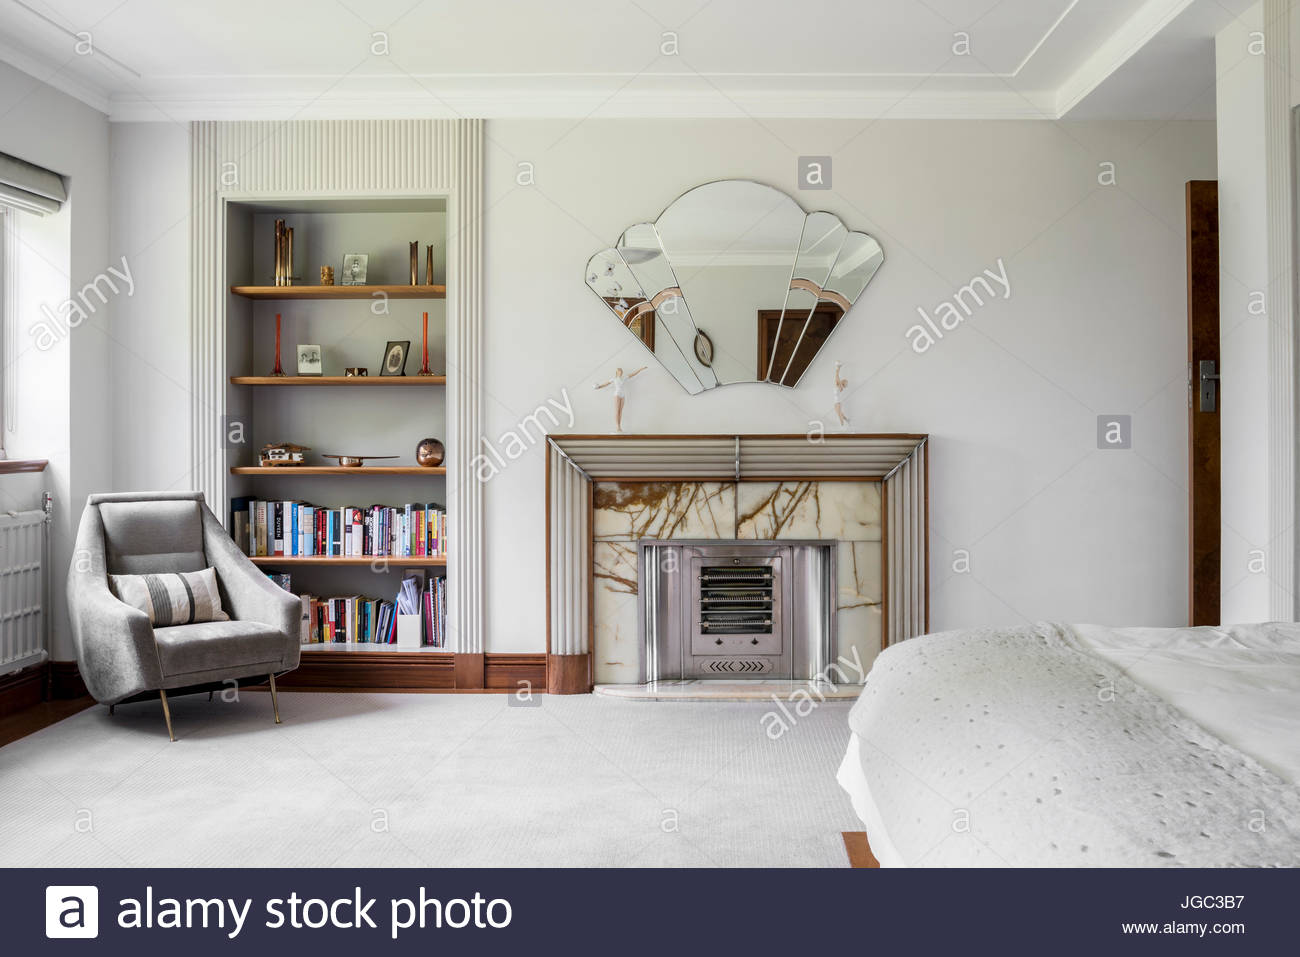 deco fireplace photos deco fireplace images alamy. Black Bedroom Furniture Sets. Home Design Ideas